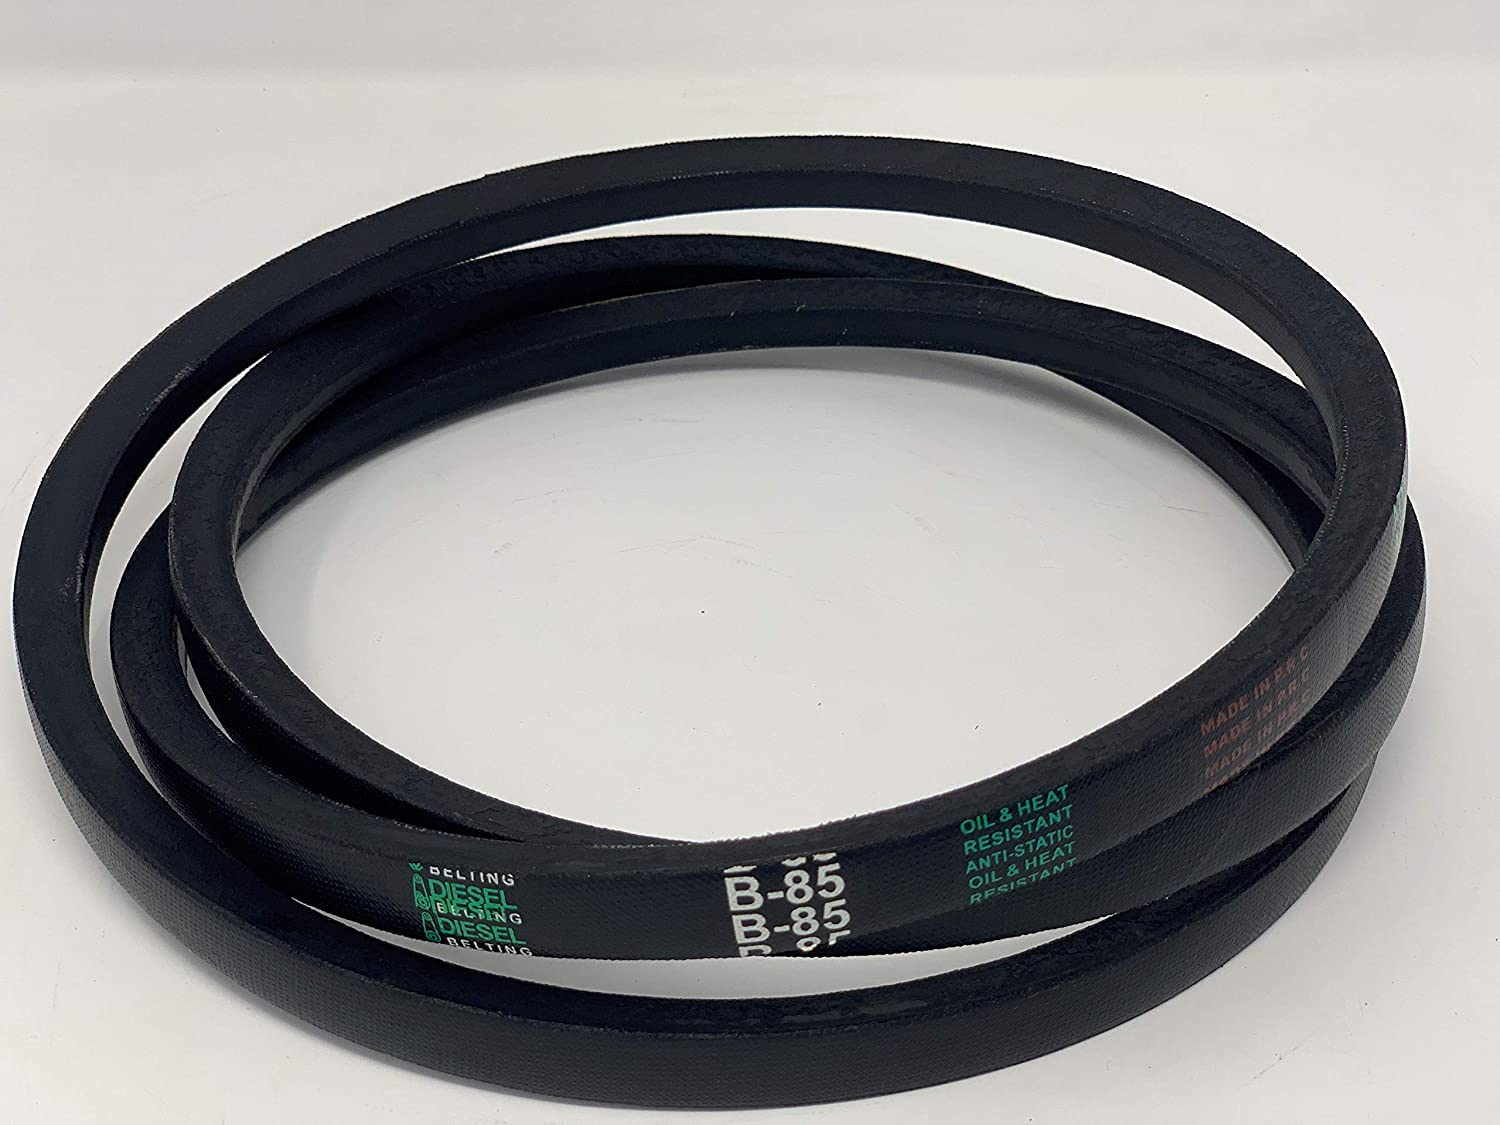 B85 (5L880) Classic Wrapped V-Belt 21/32 x 88in Outside Circumference